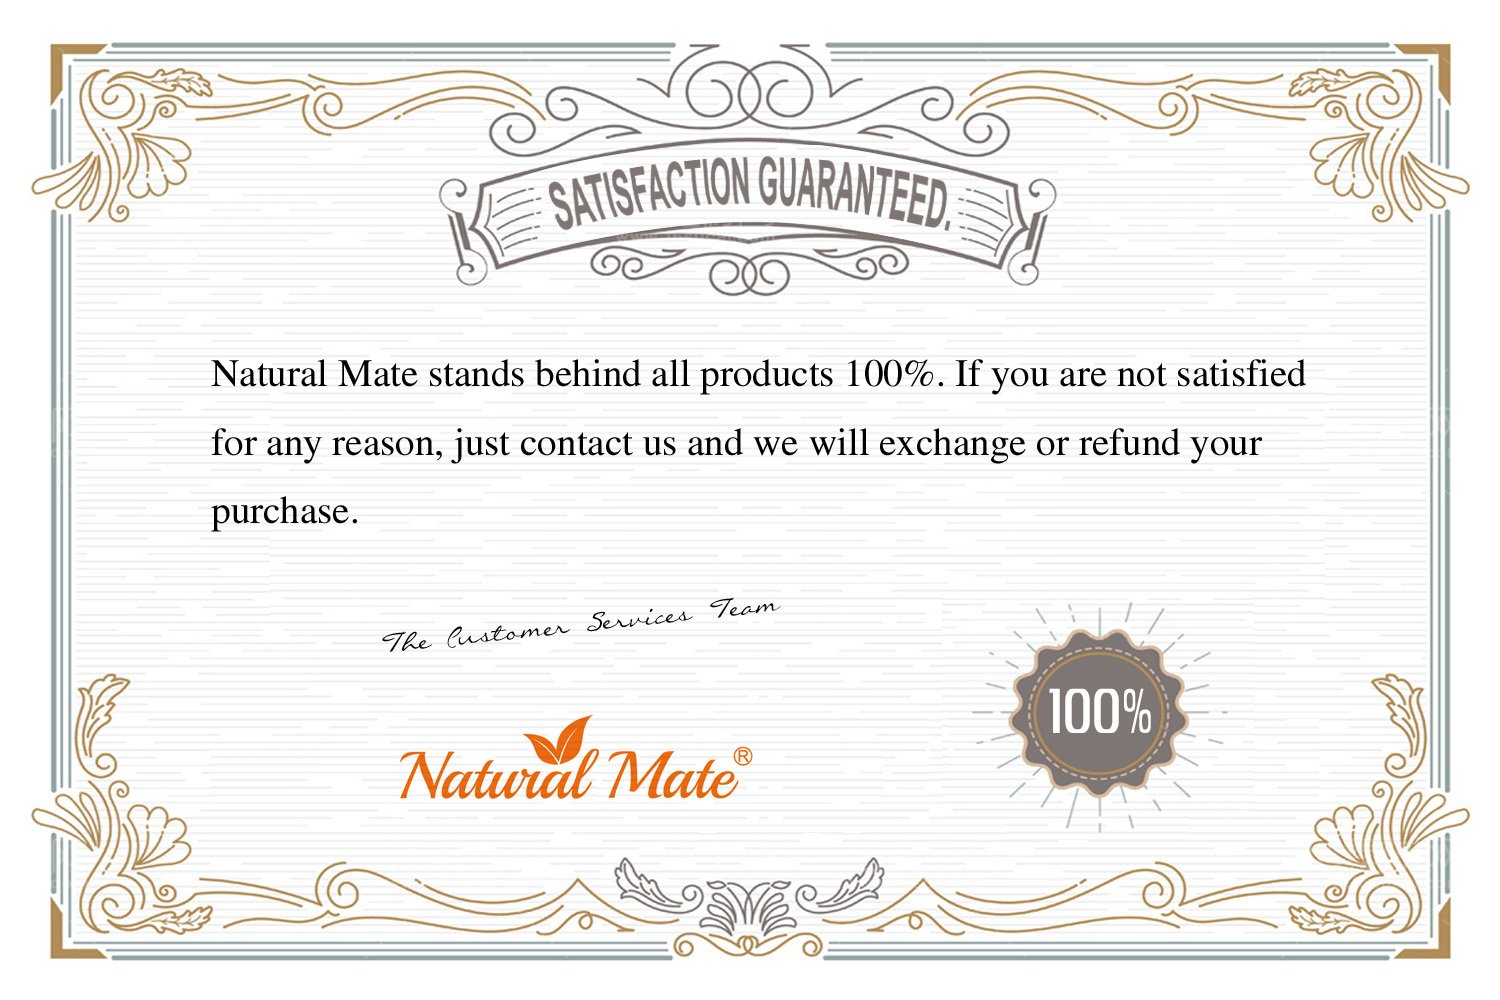 Natural Mate Granular Sweetener, Stevia and Erythritol, 1 Pound, (Pack of 3) by Natural Mate (Image #8)